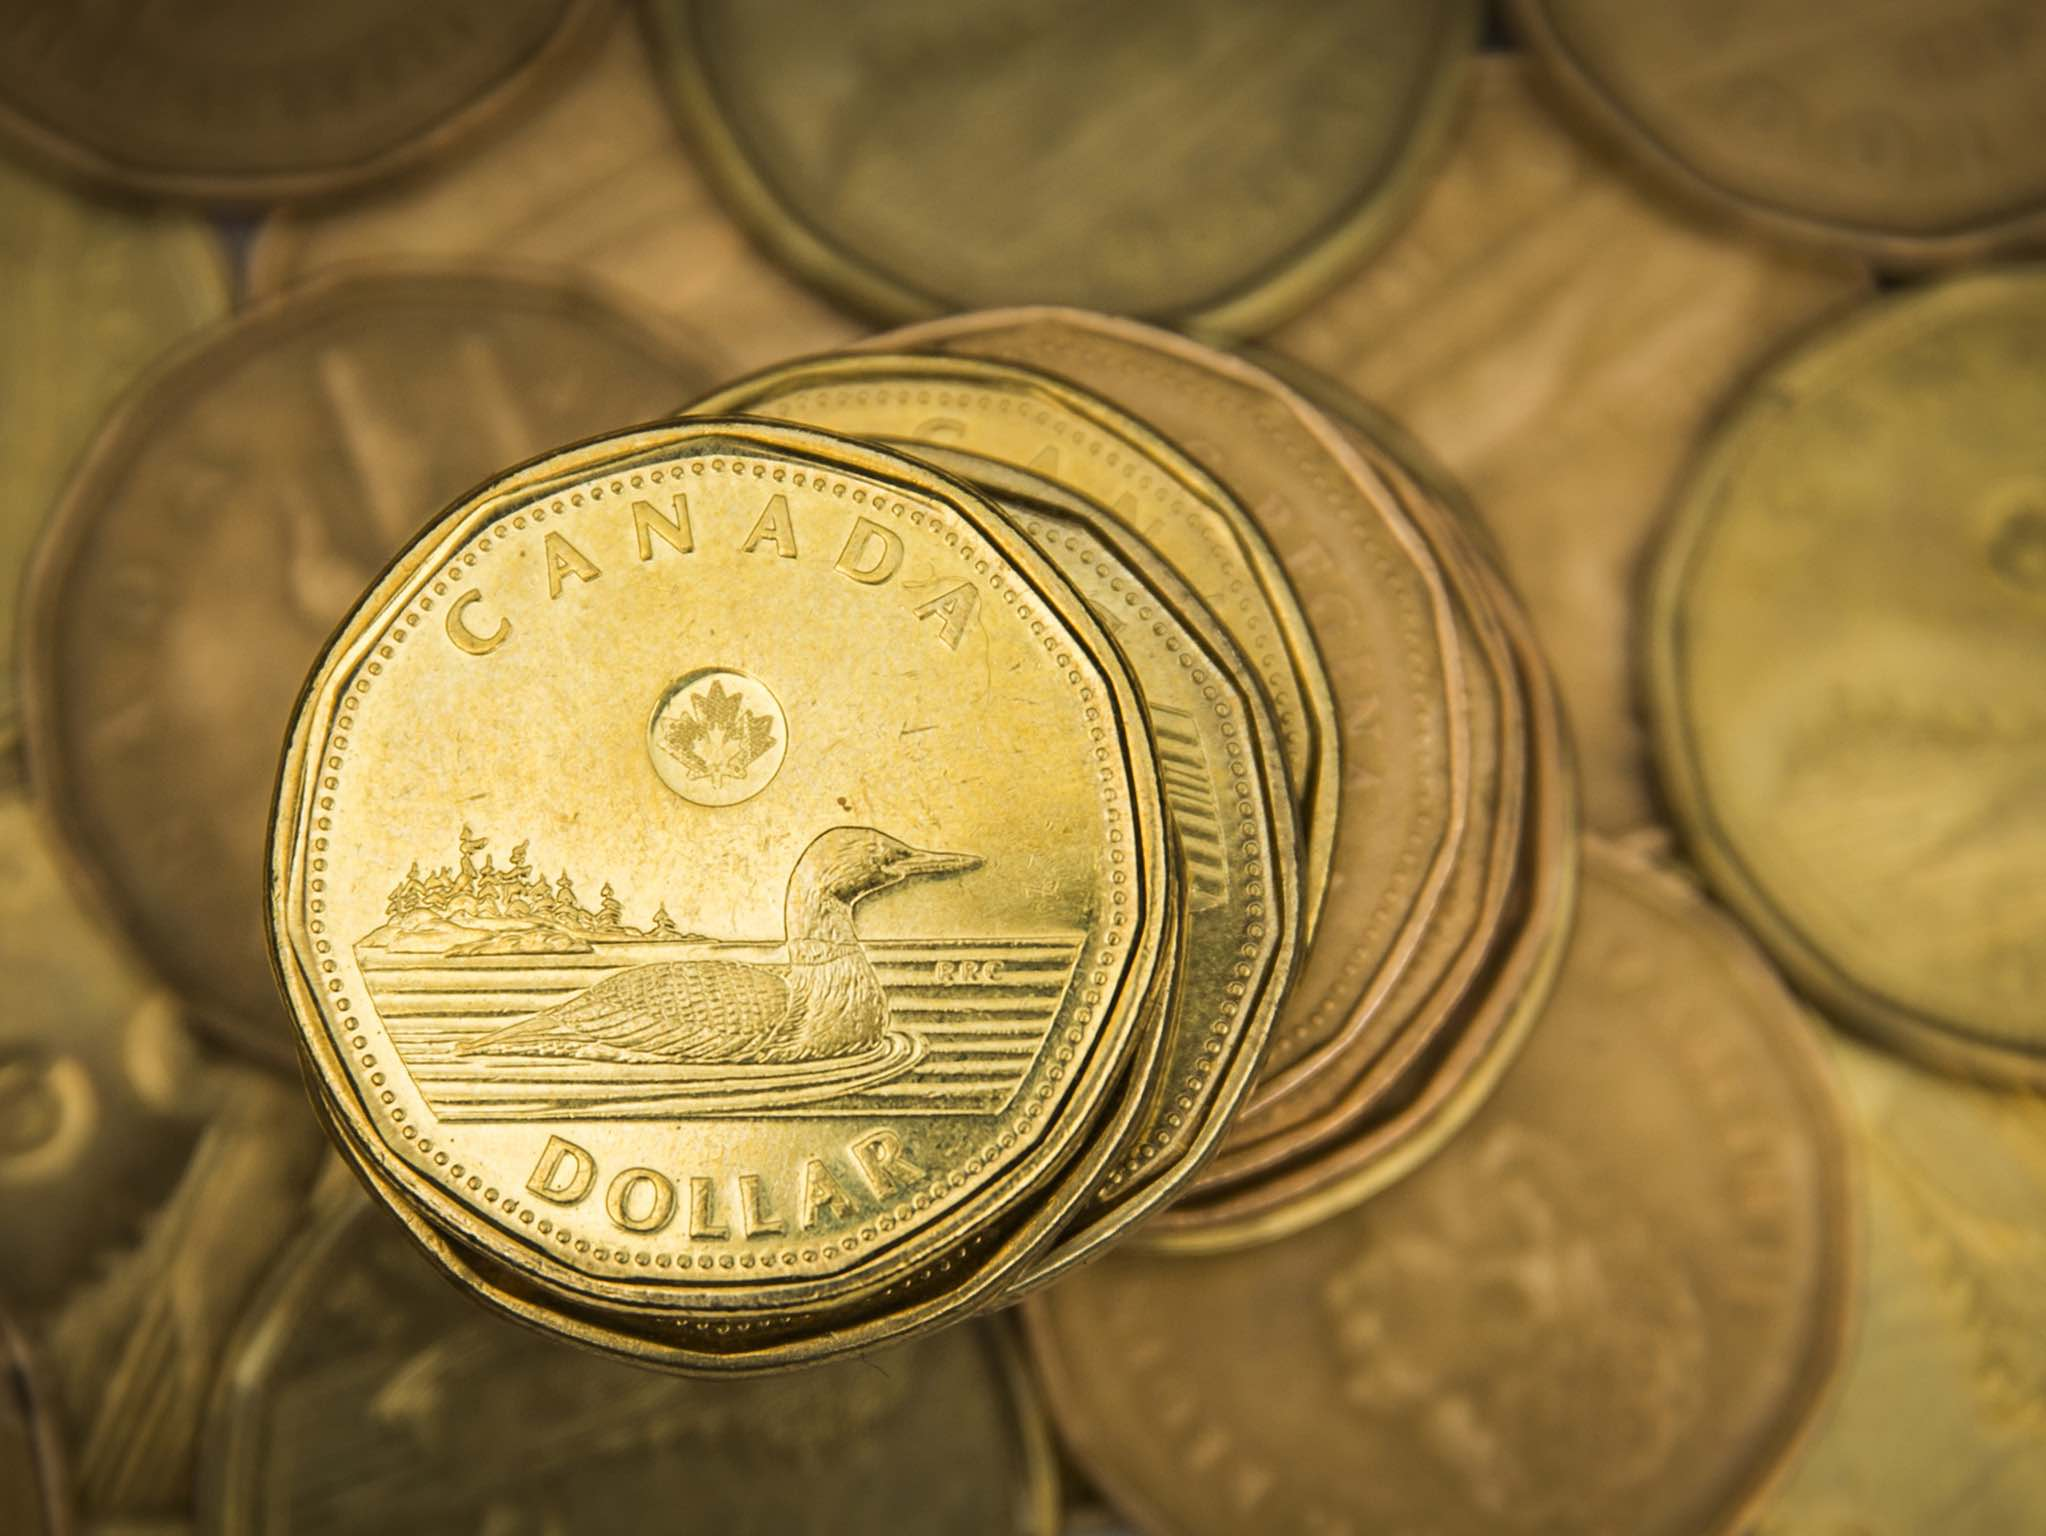 CANADA: Ontario is Ready to Test a Basic Income